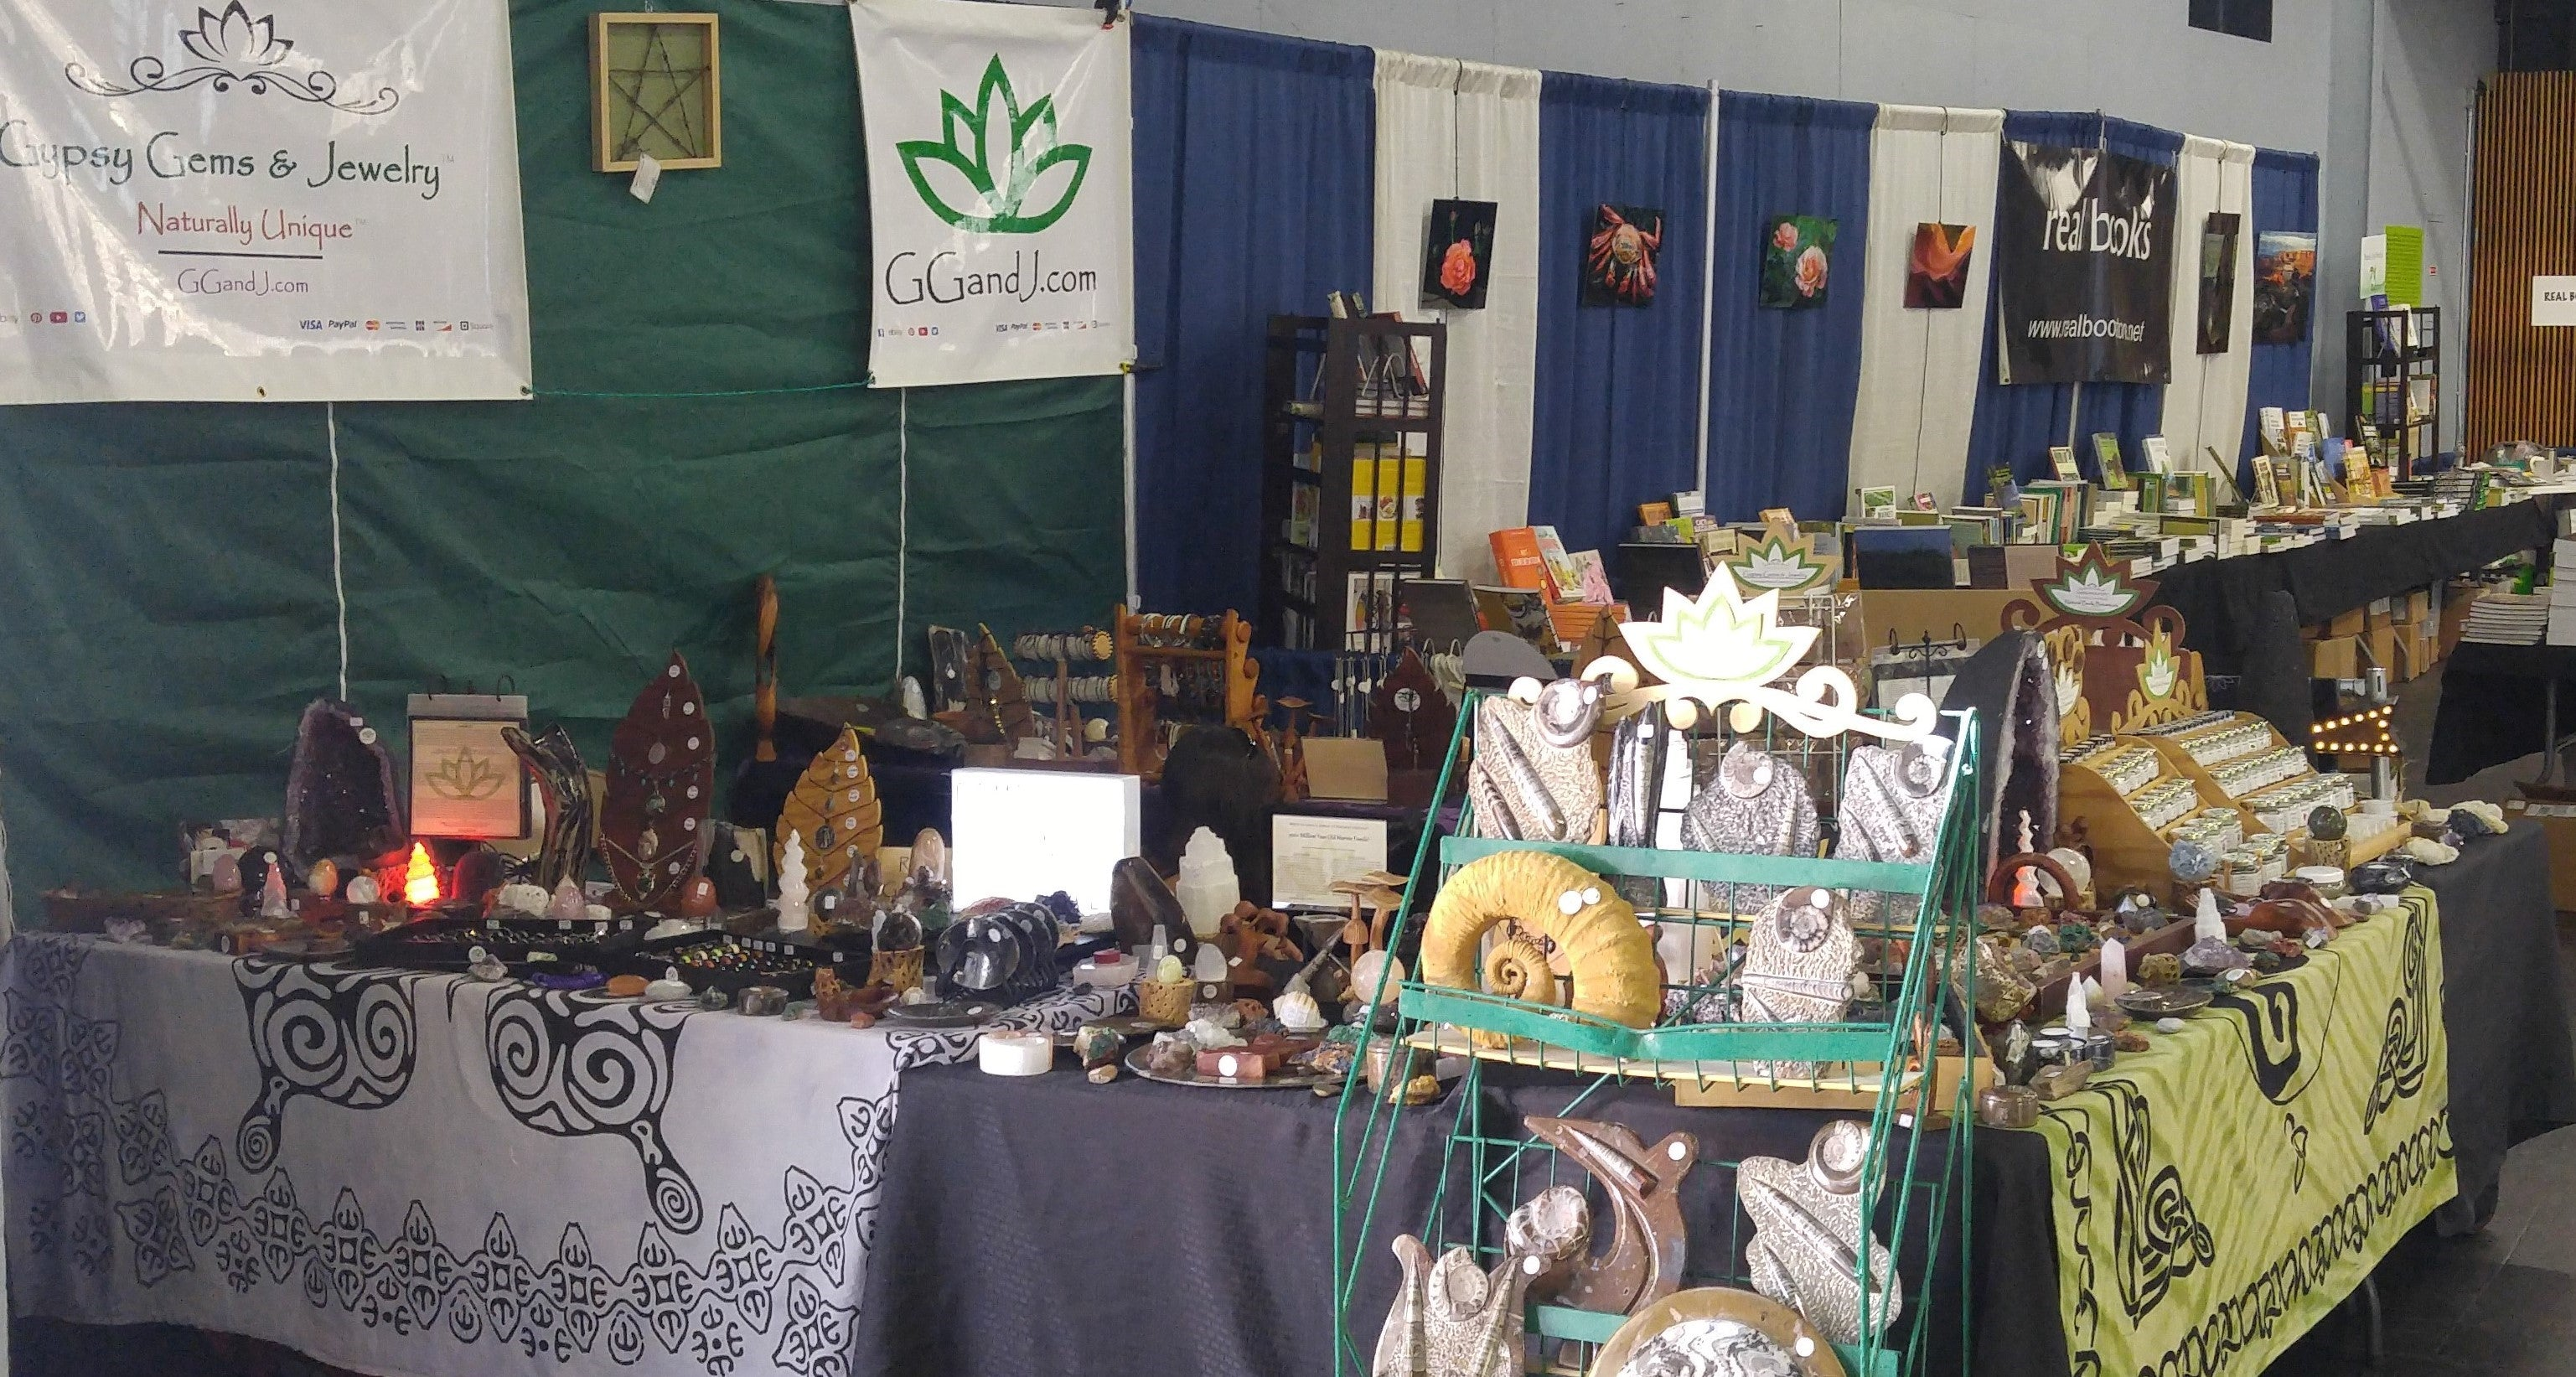 Nation Heirloom Exposition Grand Pavileon ggandj.com Booth Mother of Earth News